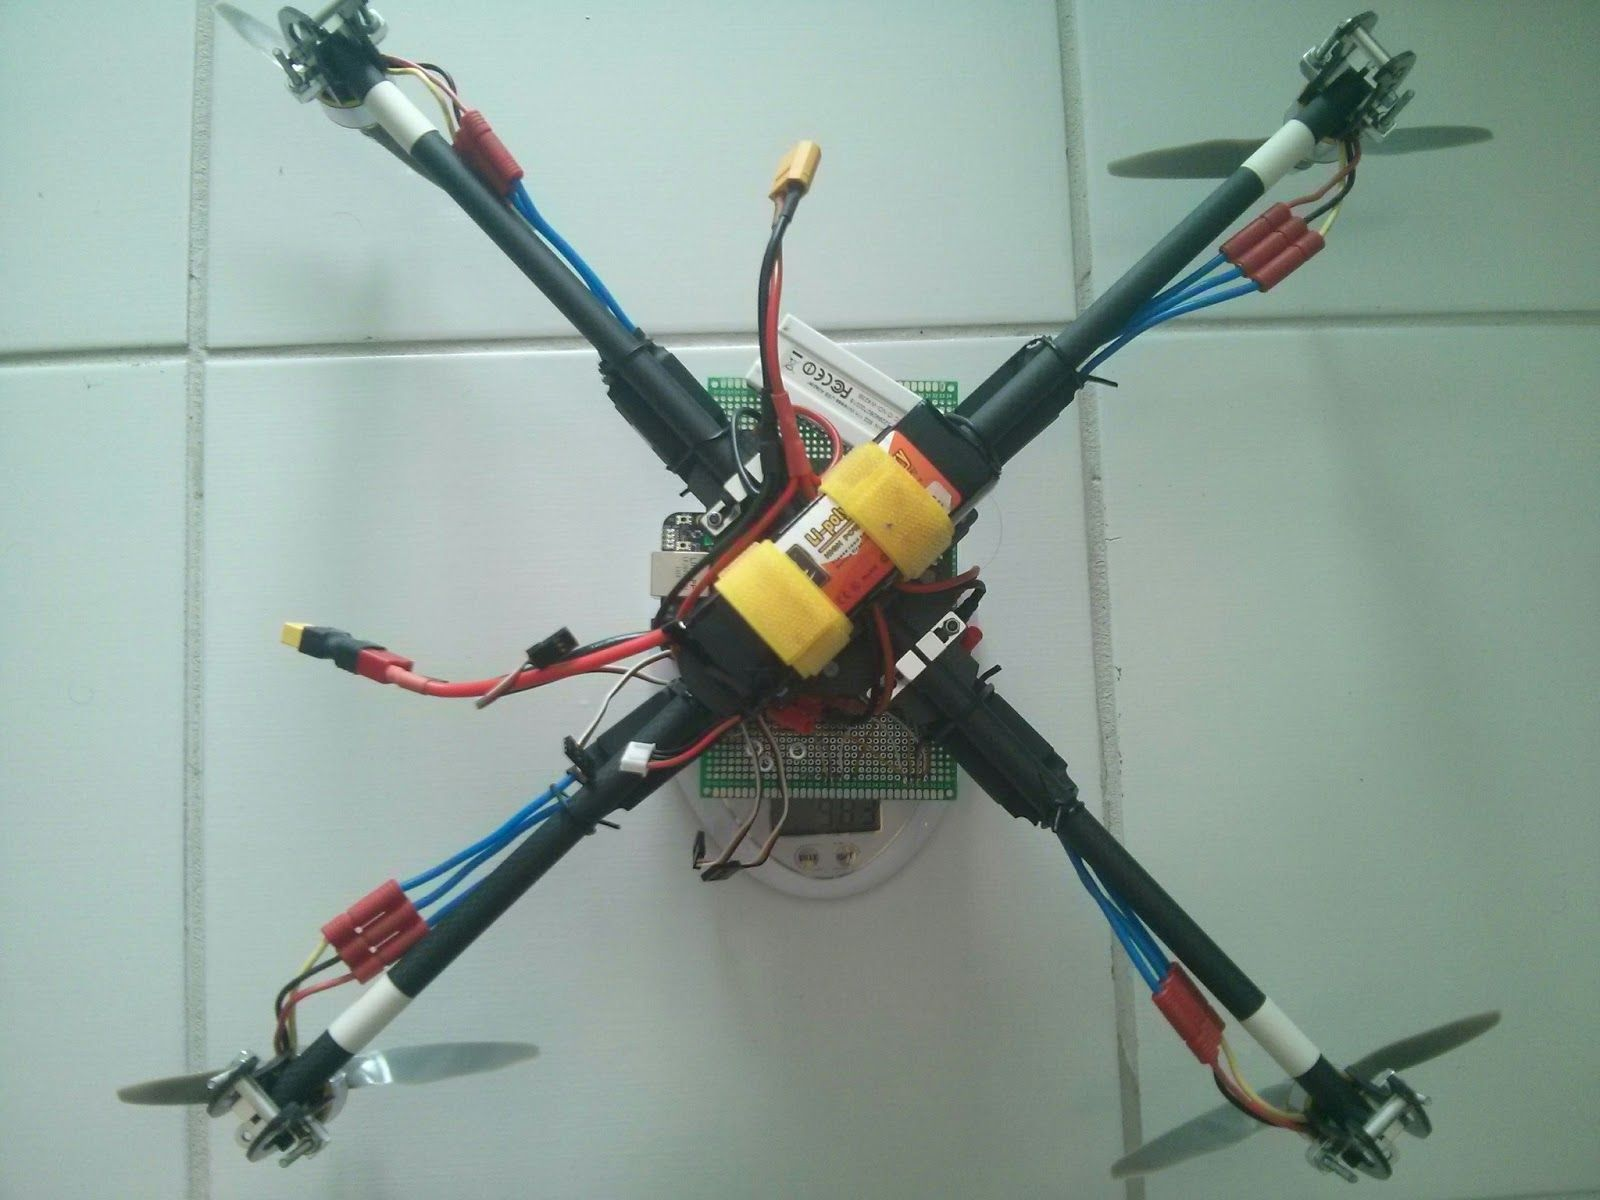 Drones personalizados quadcopter code for beaglebone